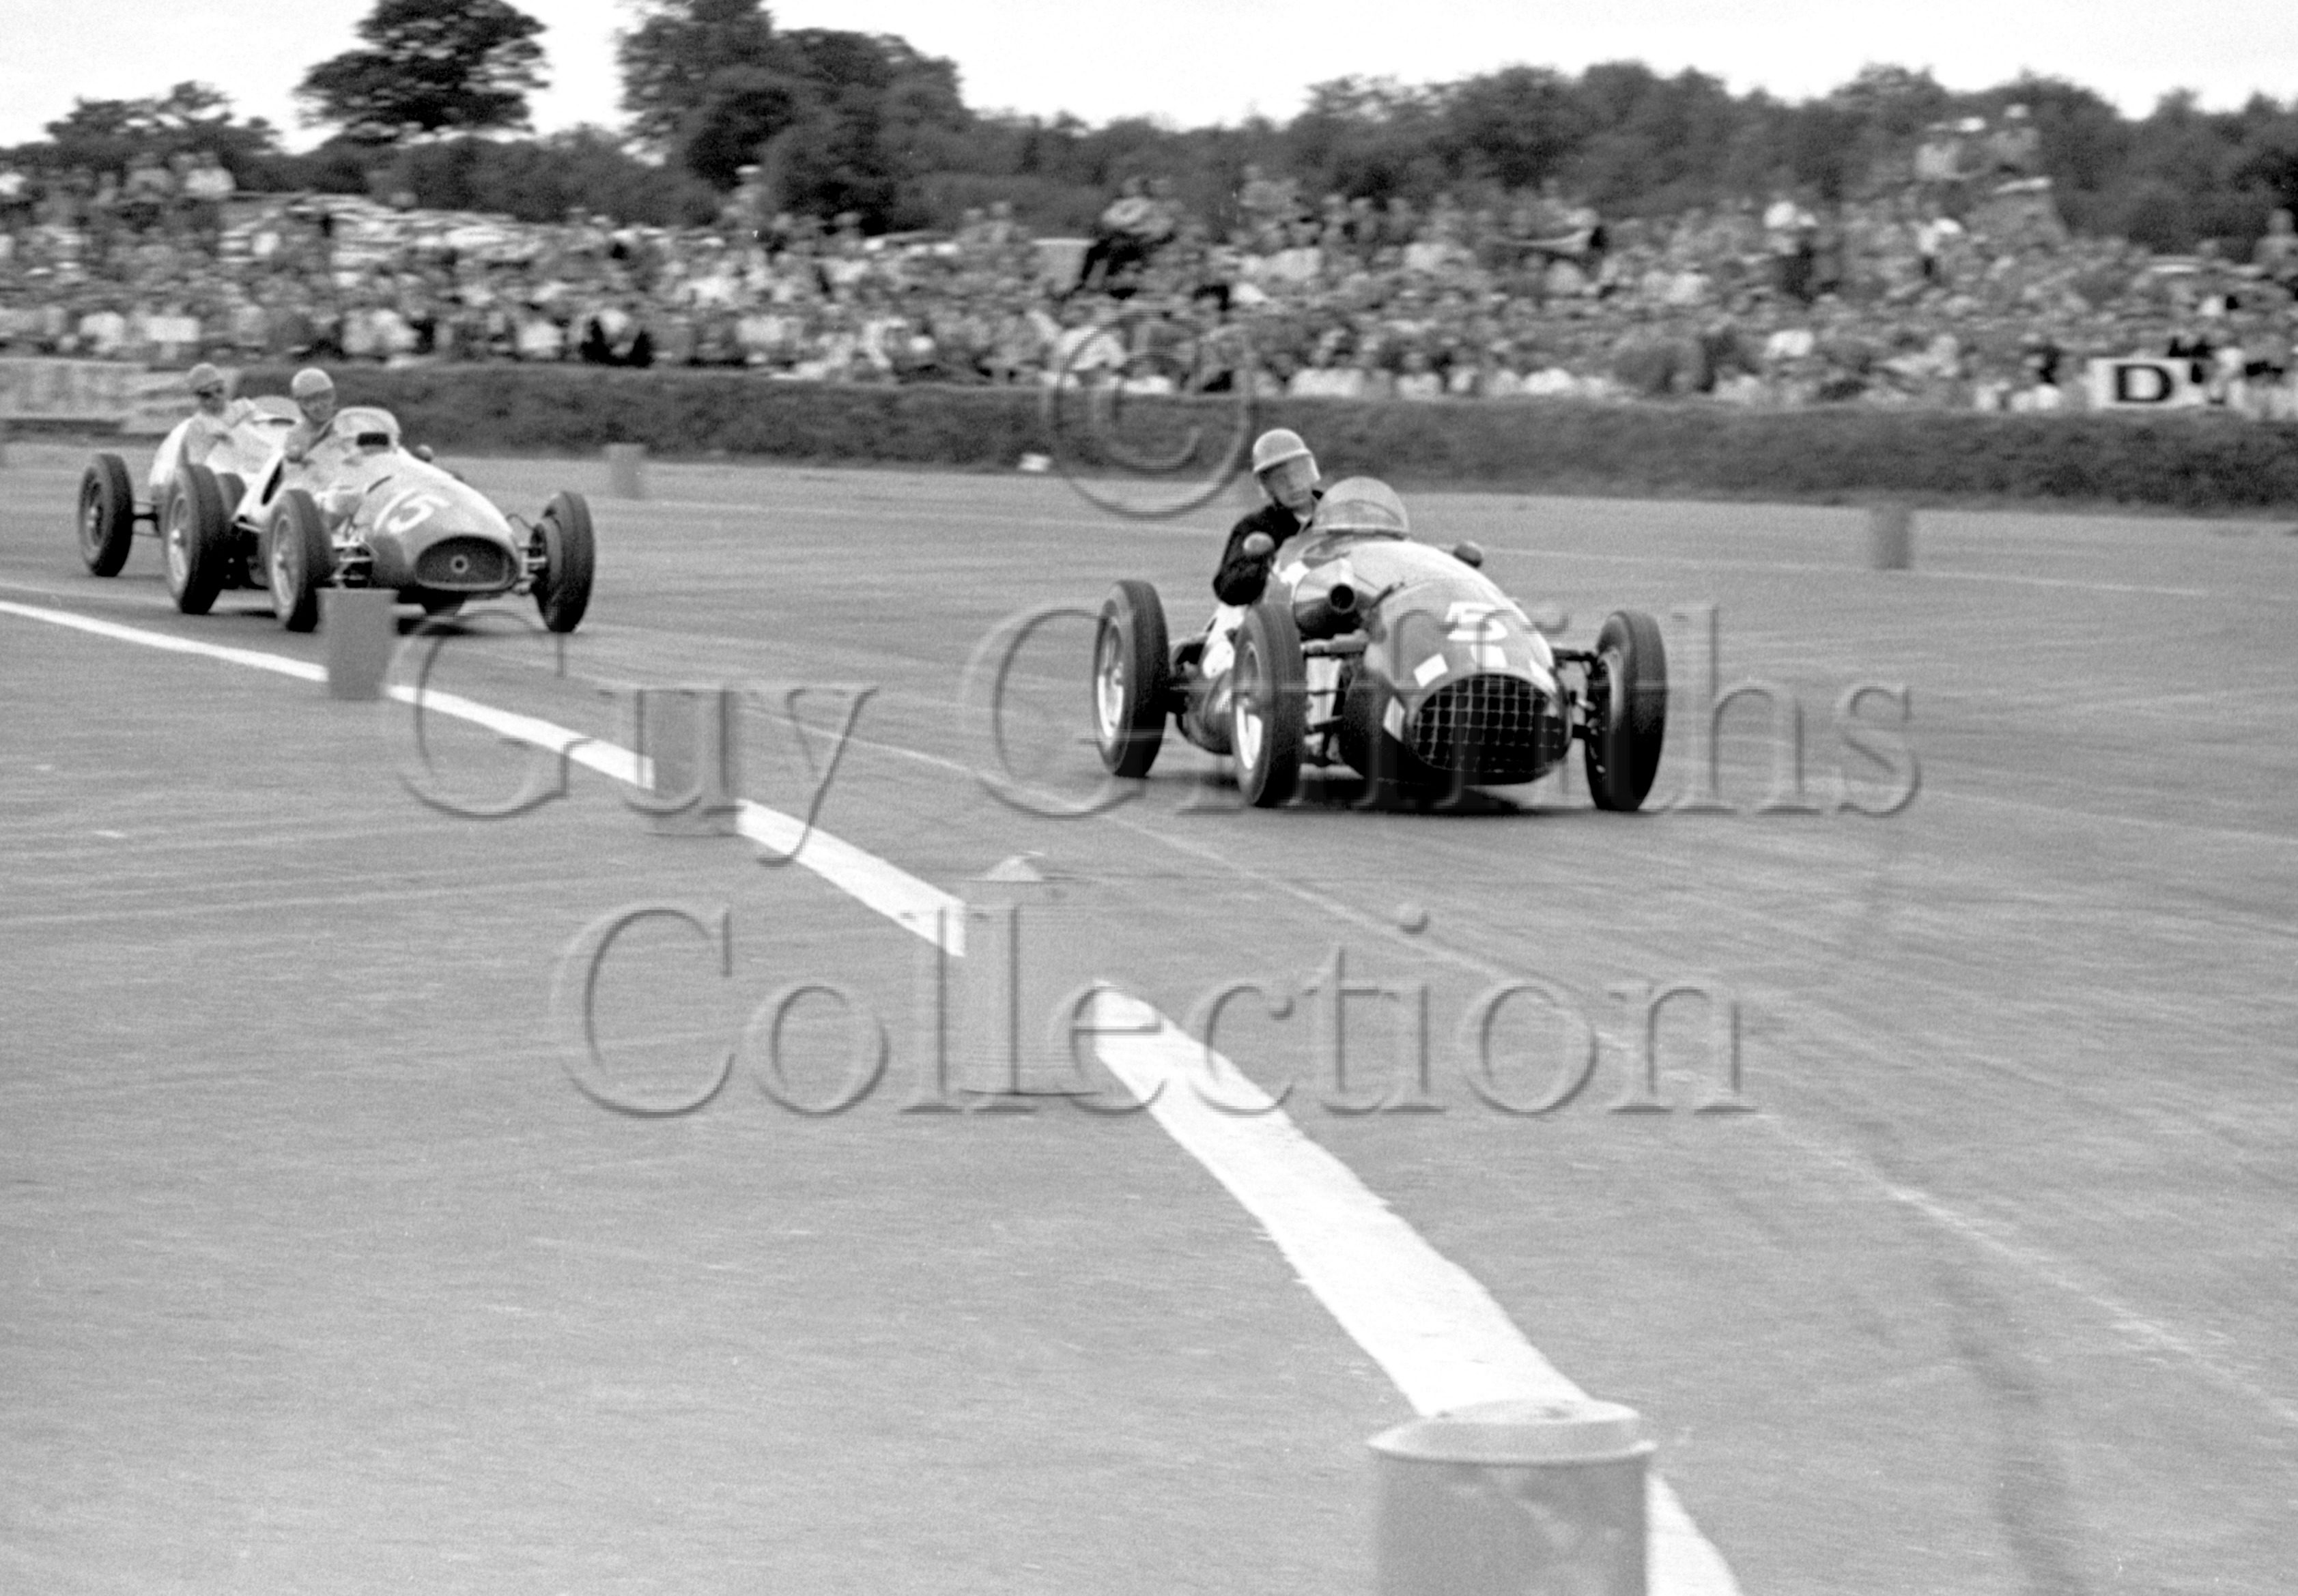 57-941–E-Thompson–Connaught–Silverstone–19-07-1952.jpg - The Guy Griffiths Collection